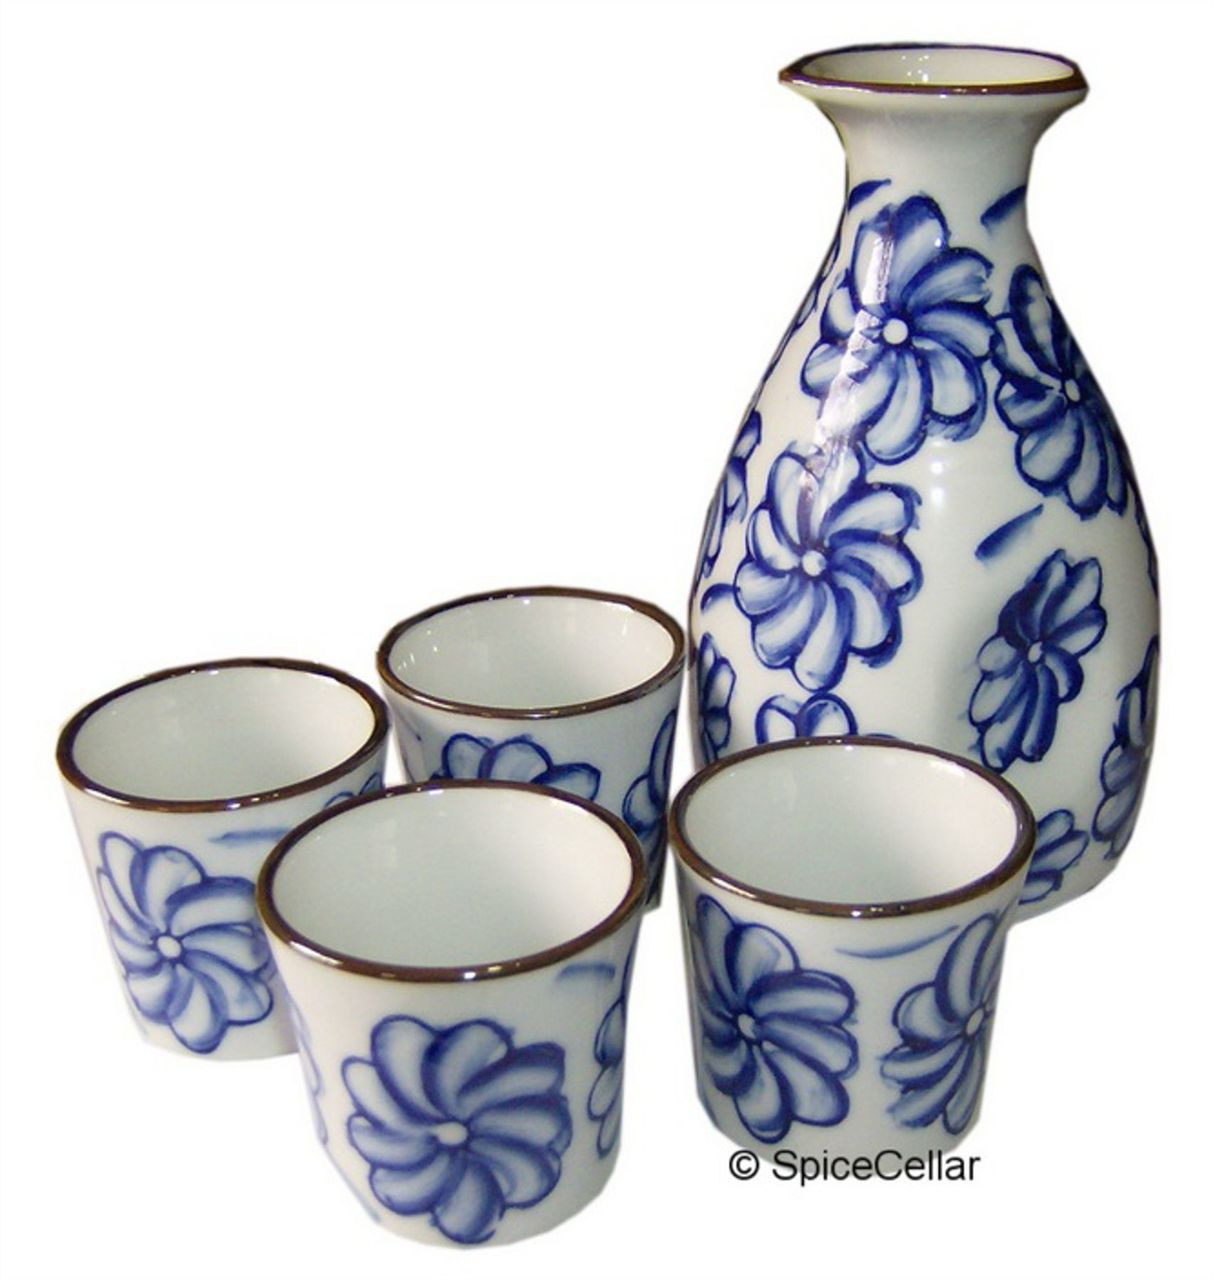 Sake Set Black with Floral Pattern Ceramic Flask and Cups Boxed